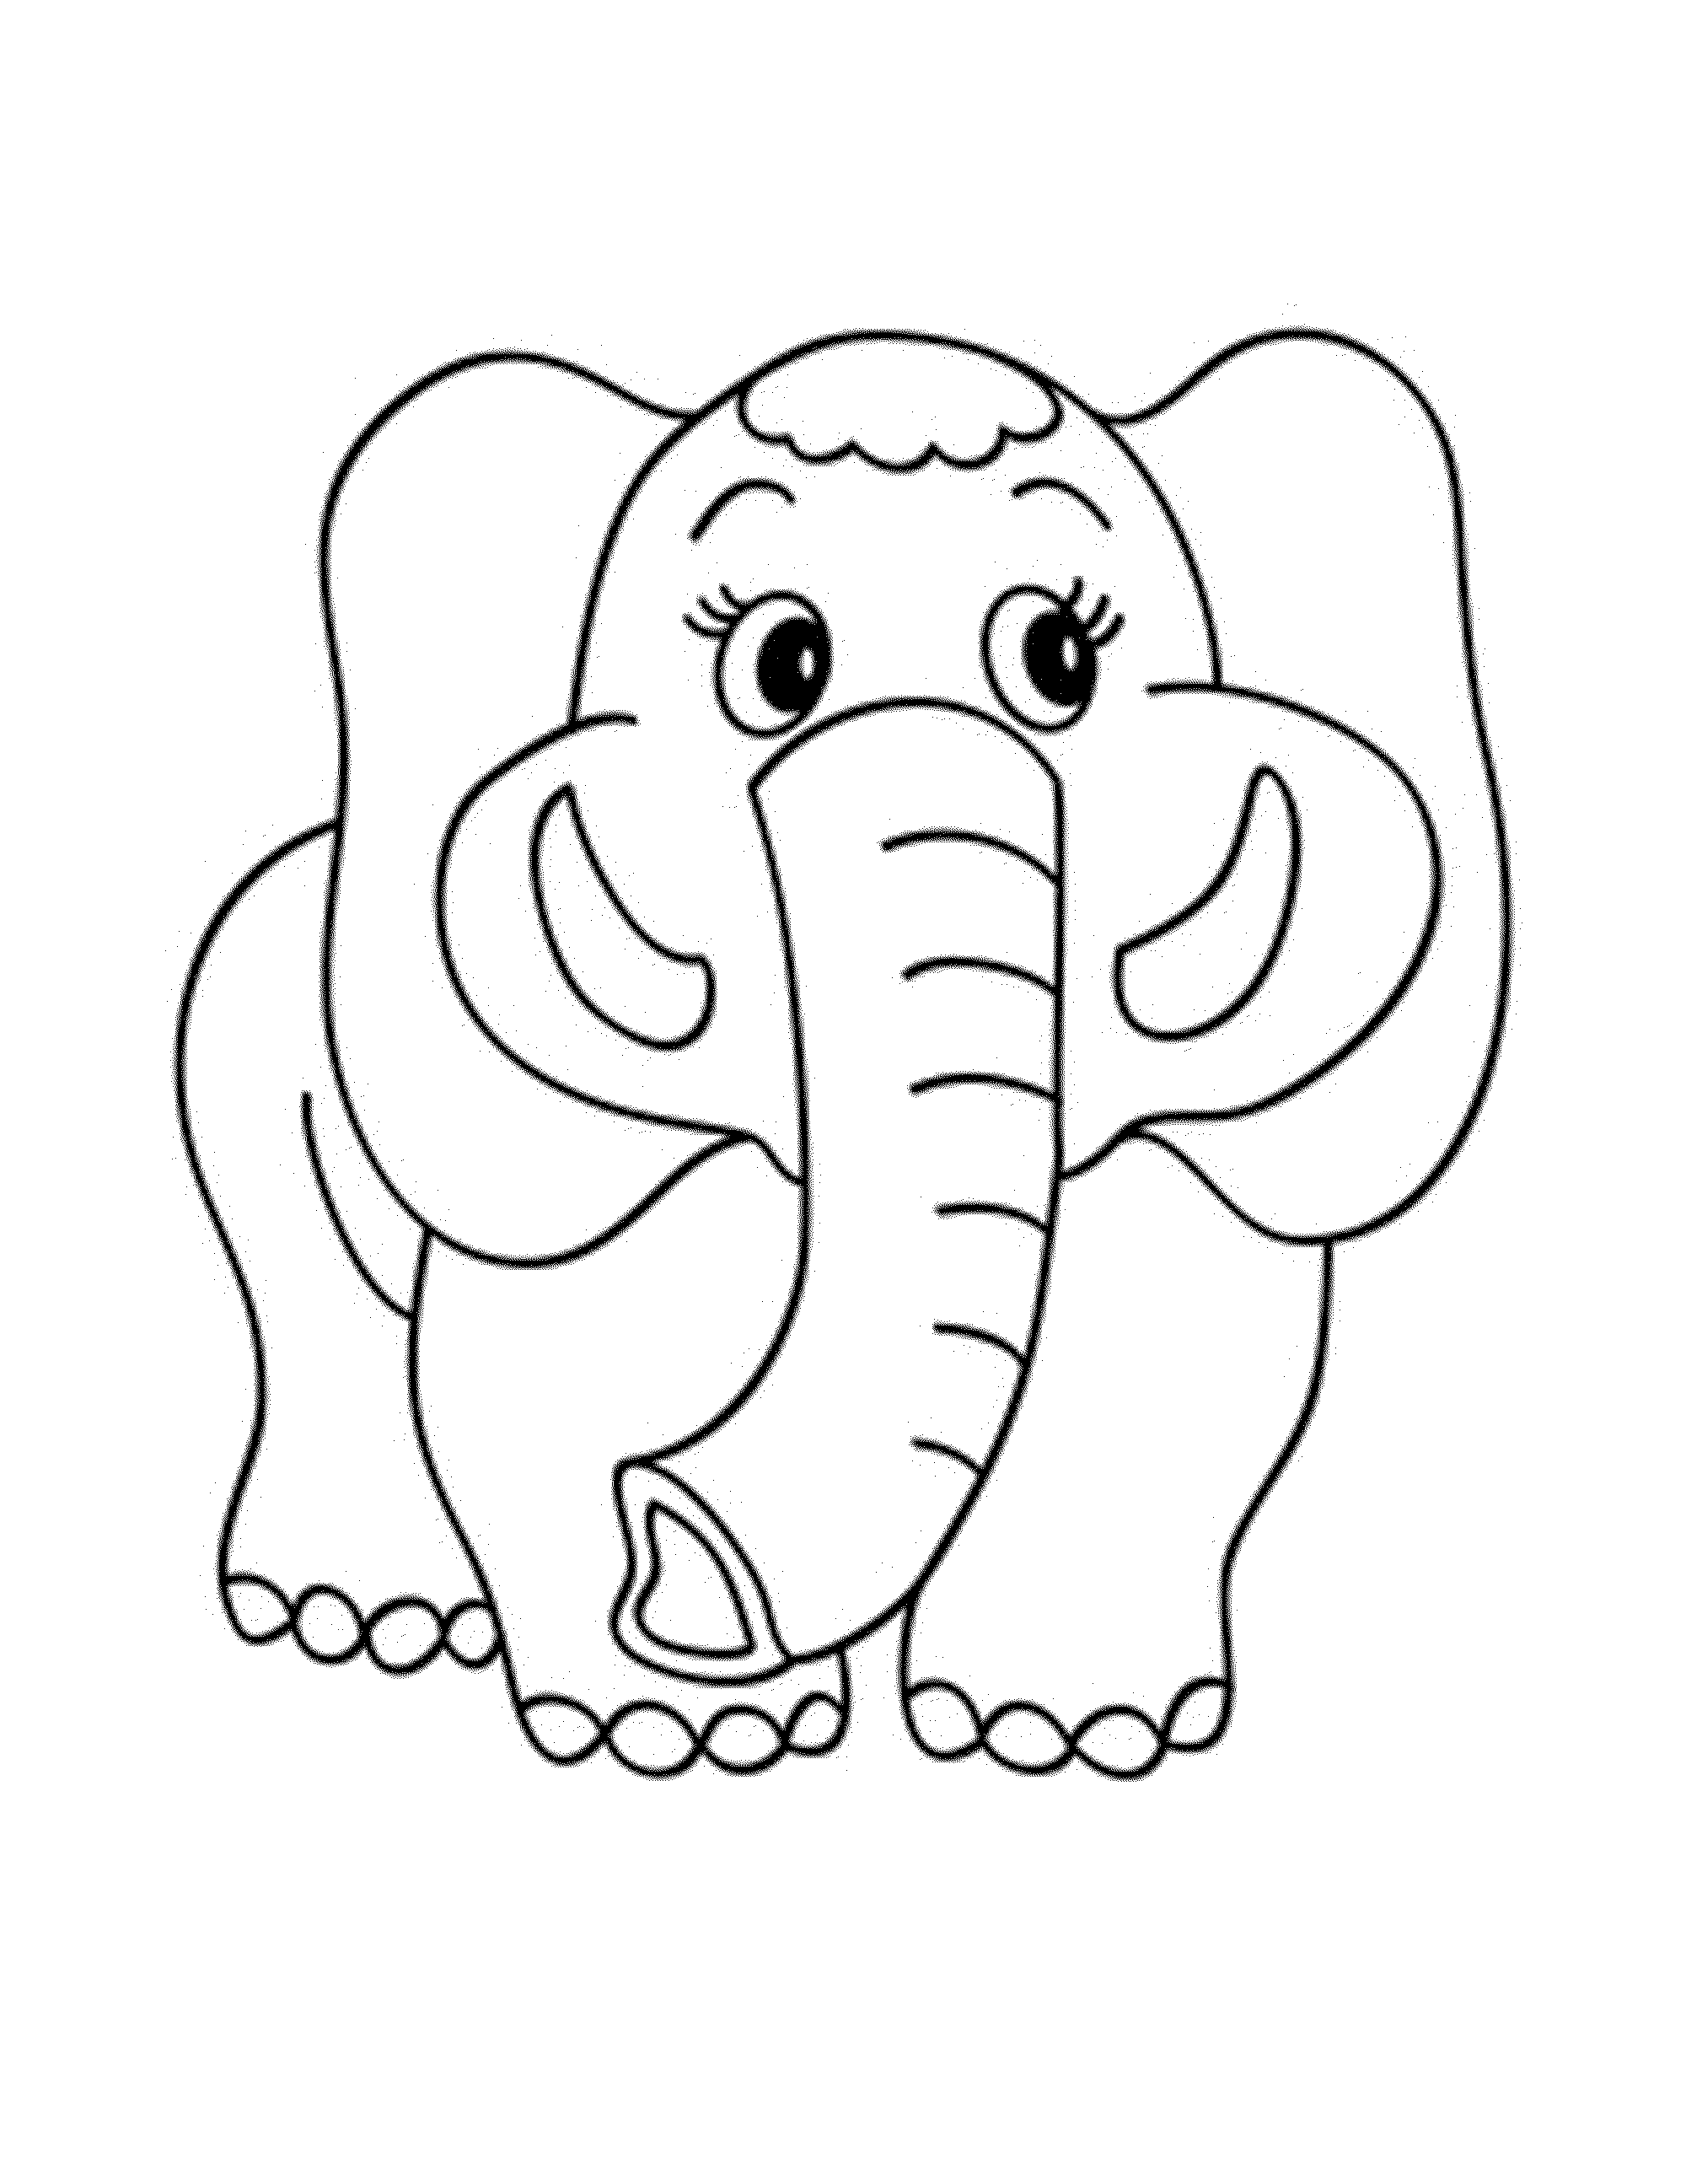 elephant colouring games running elephant with flower coloring page colouring elephant games